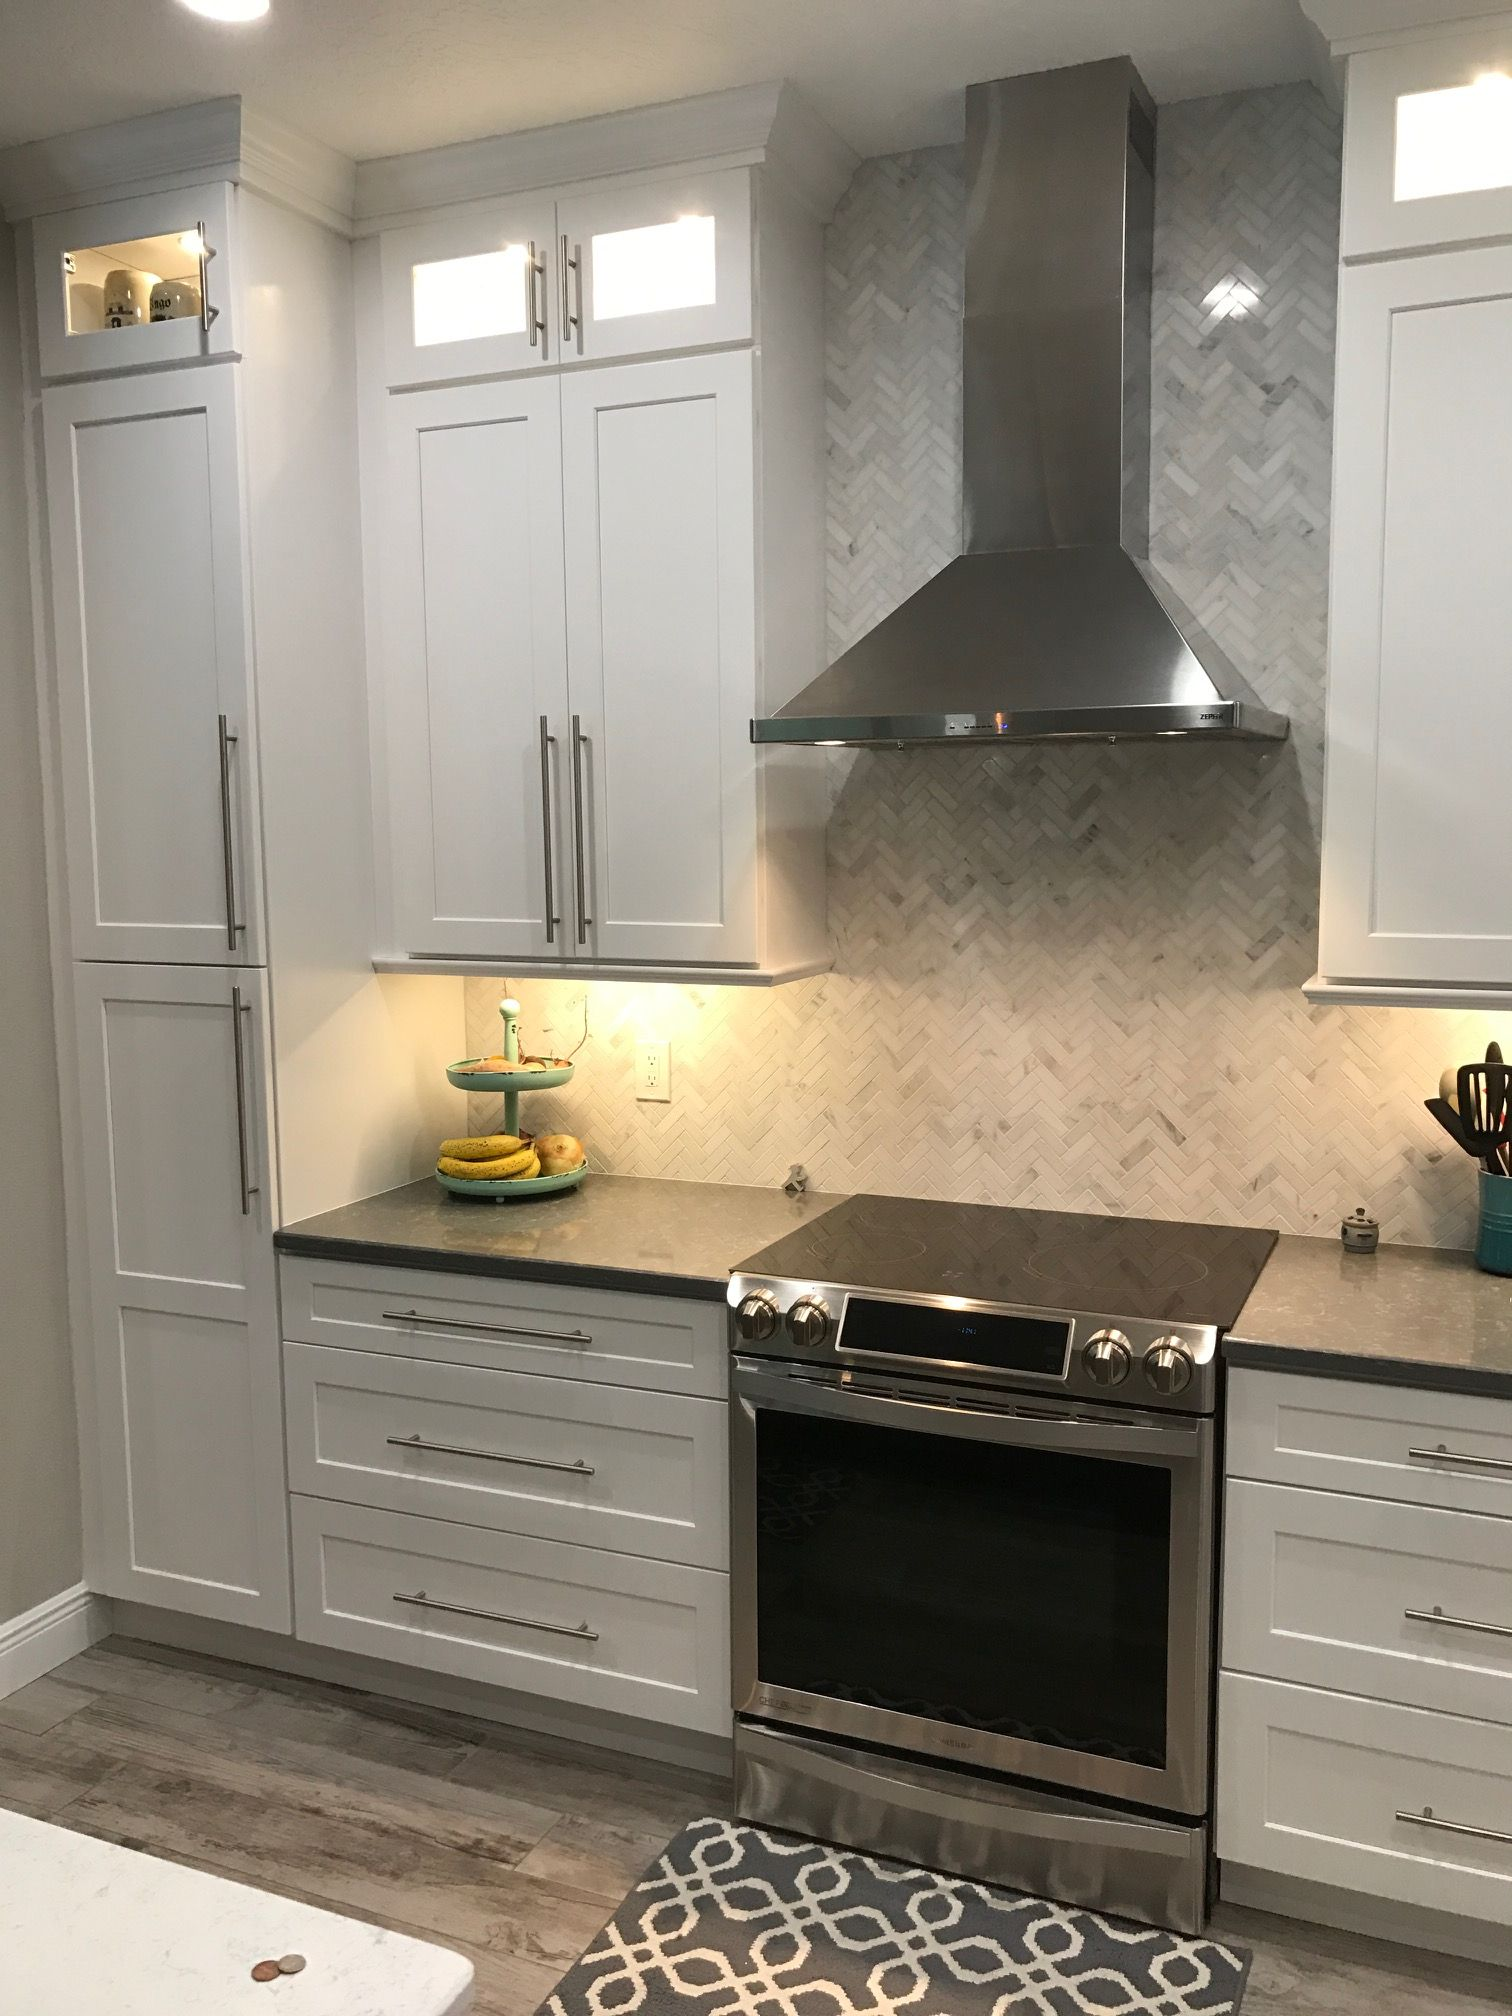 Riechhardt Kitchen AFTER This kitchen features White Shaker